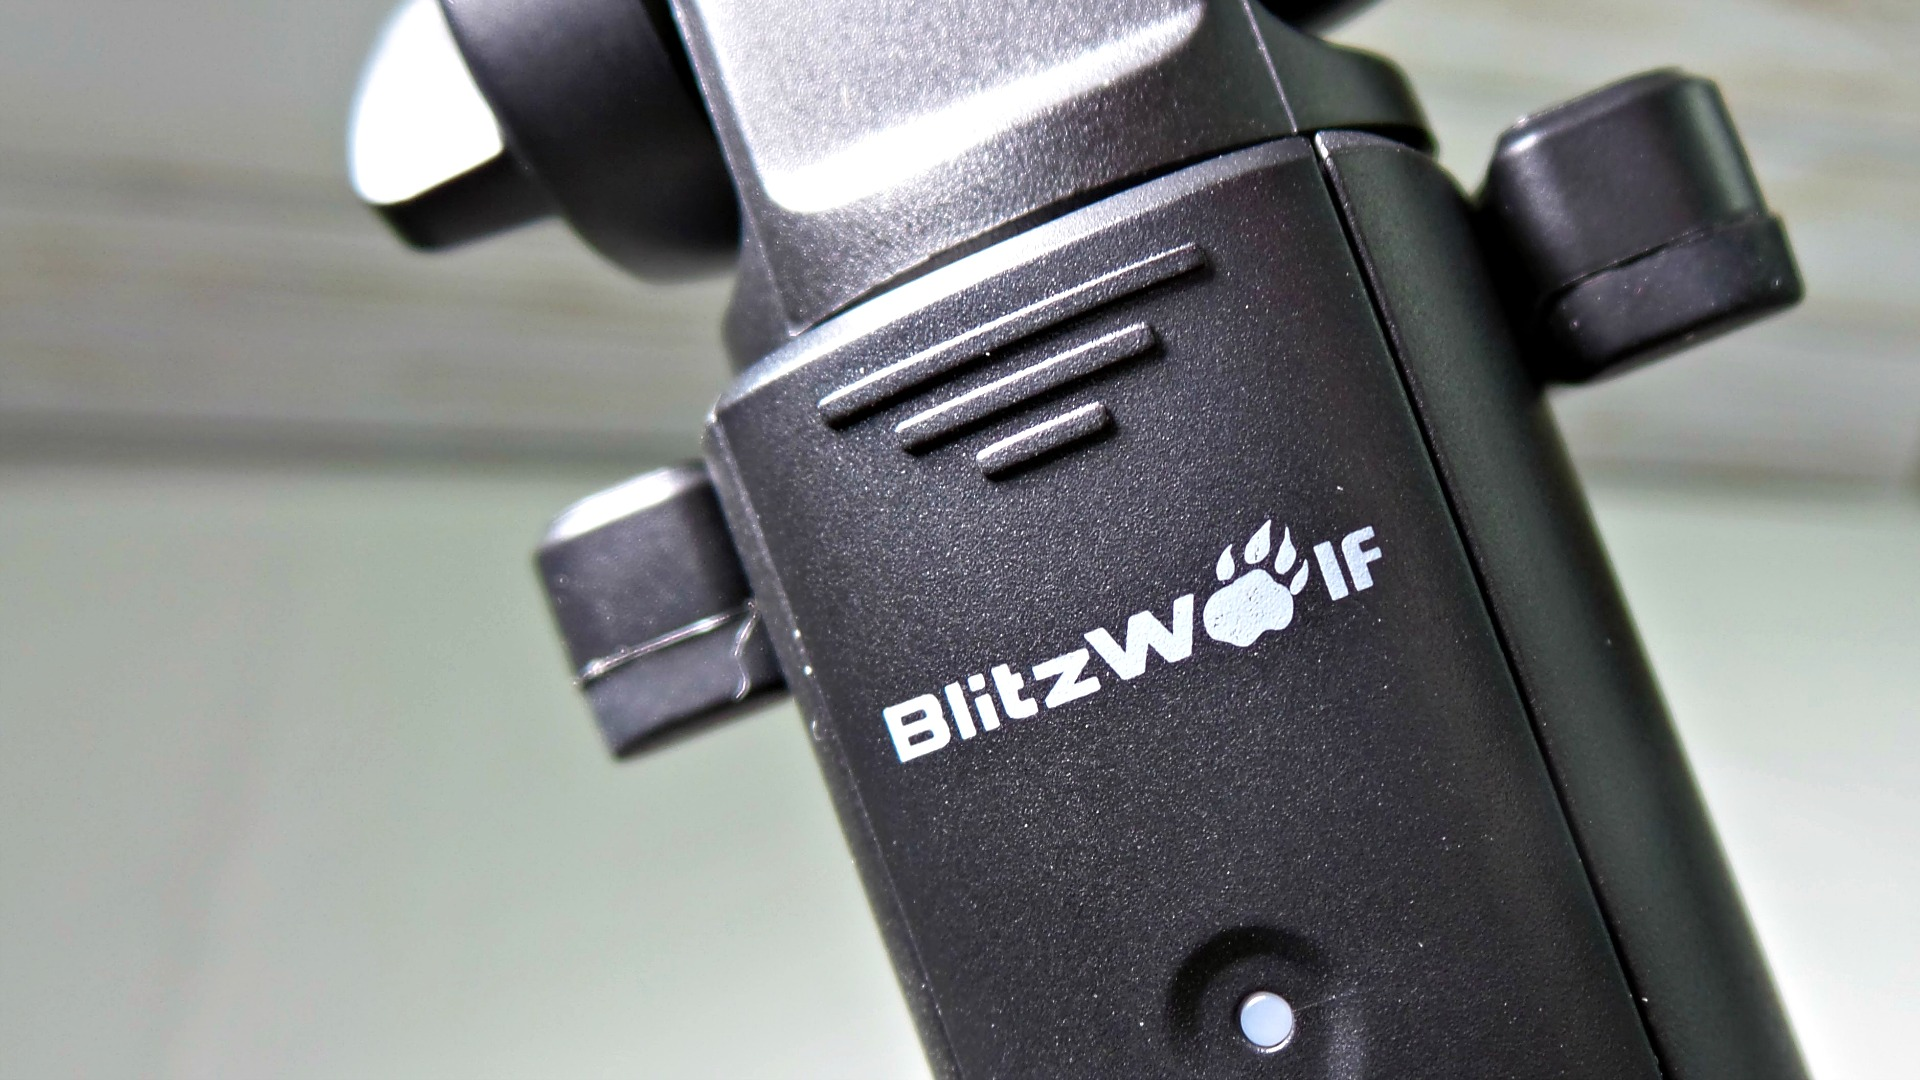 Blitzwolf Bw Bs3 Selfie Stick Review